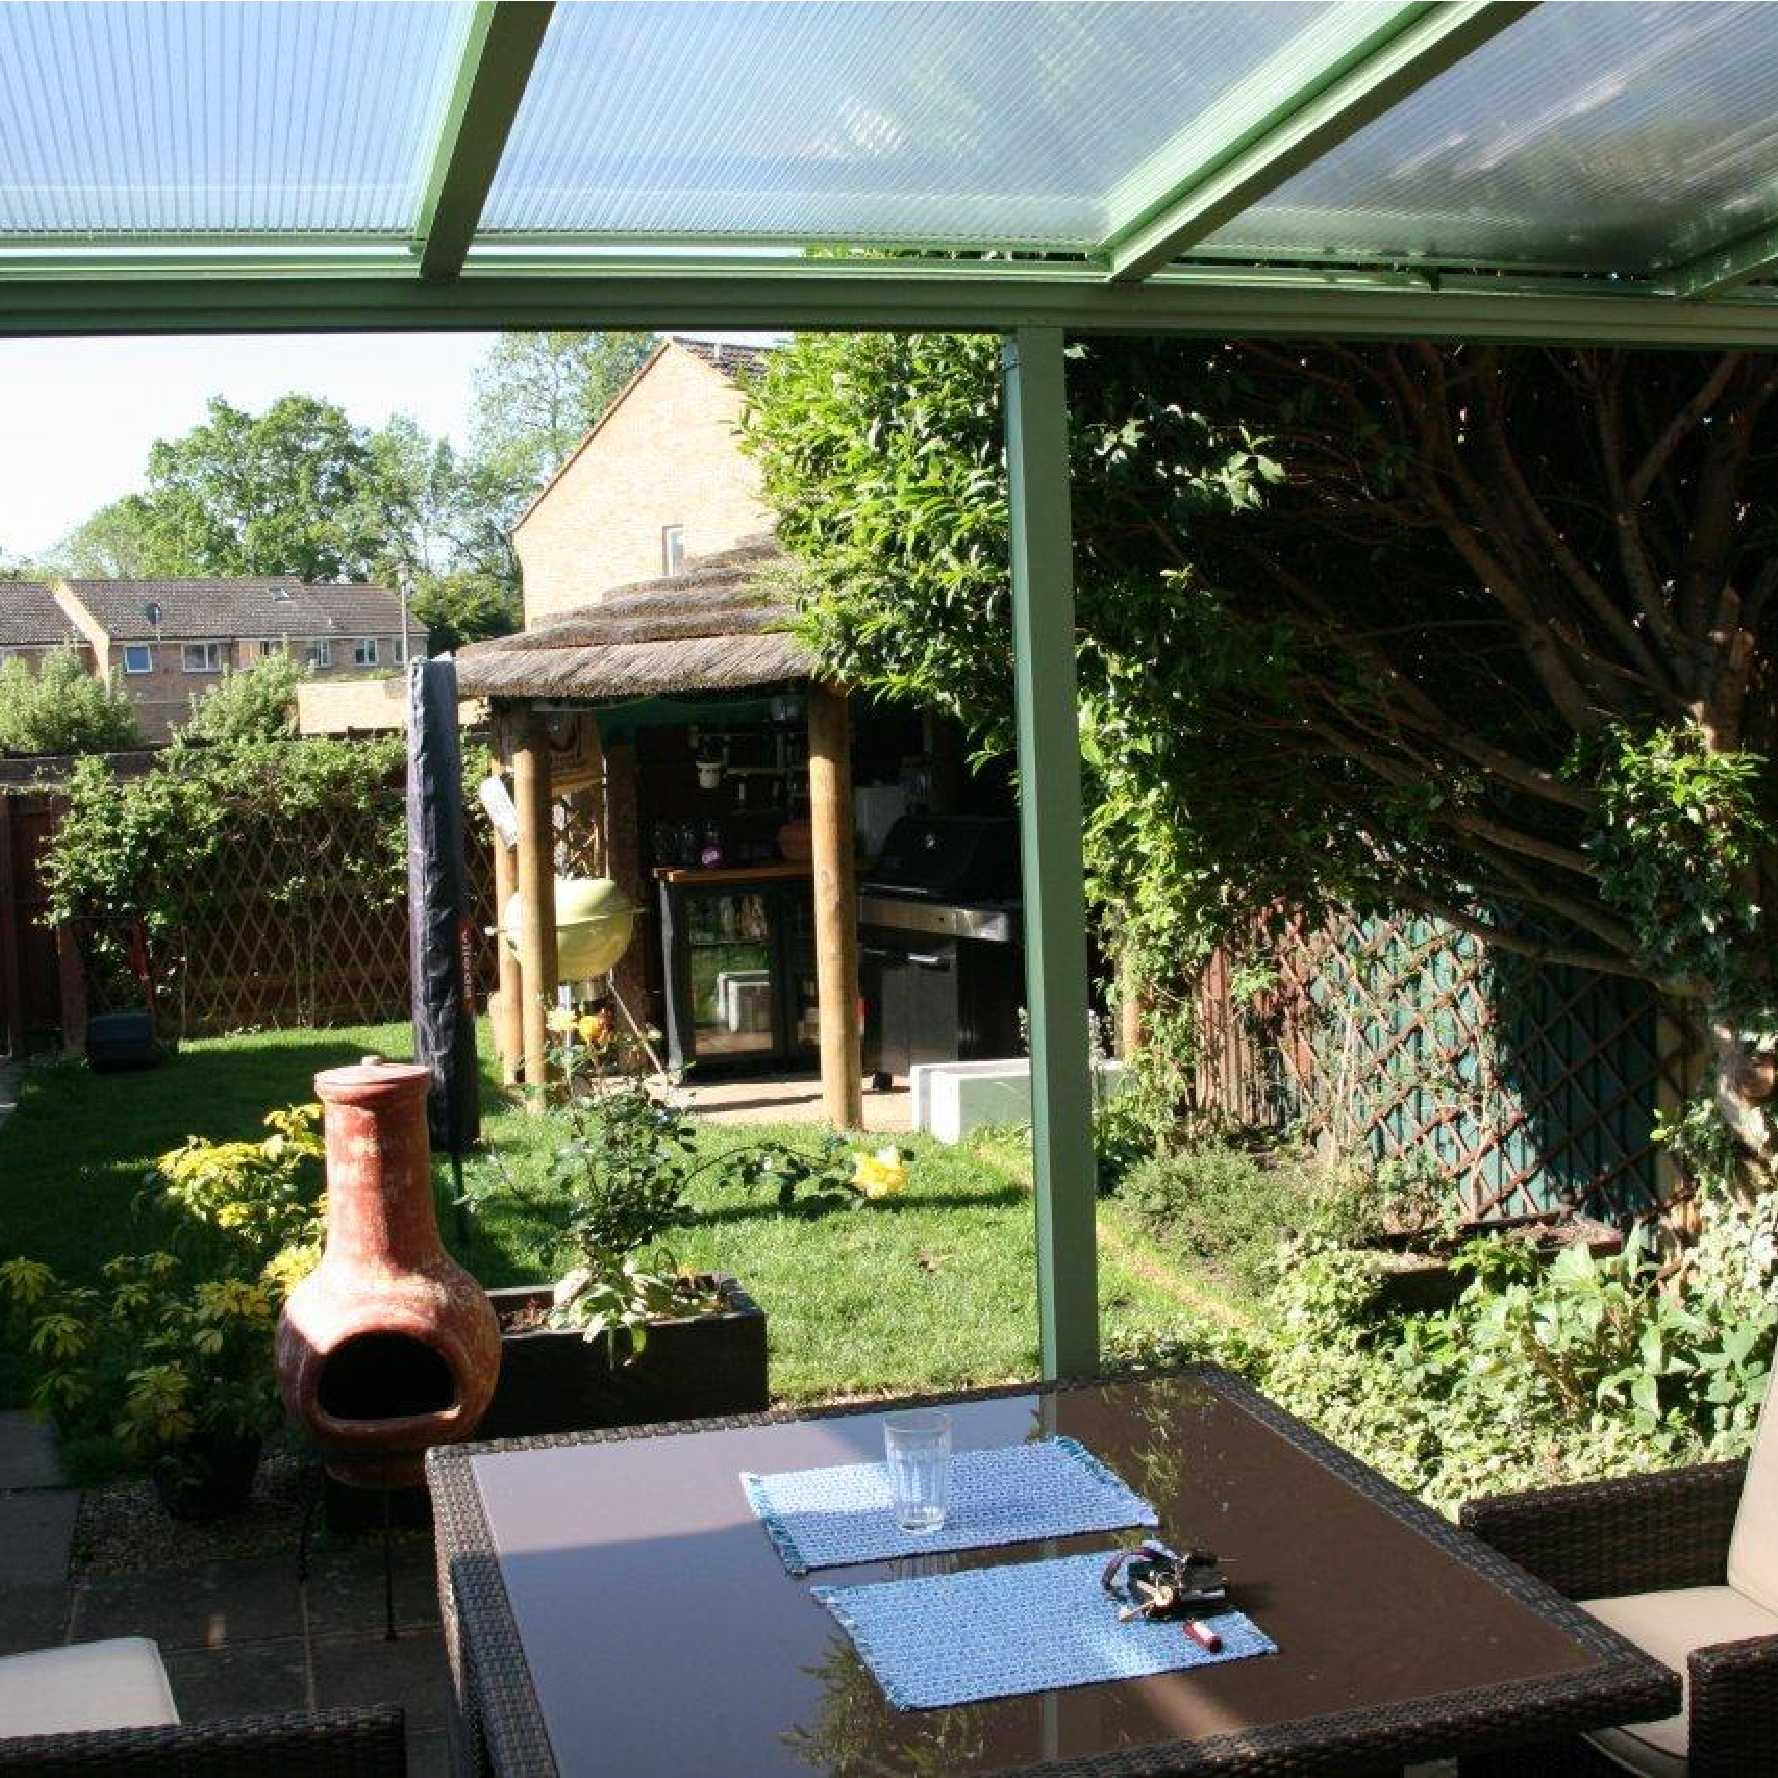 Affordable Omega Smart White Lean-To Canopy with 16mm Polycarbonate Glazing - 6.0m (W) x 3.0m (P), (3) Supporting Posts